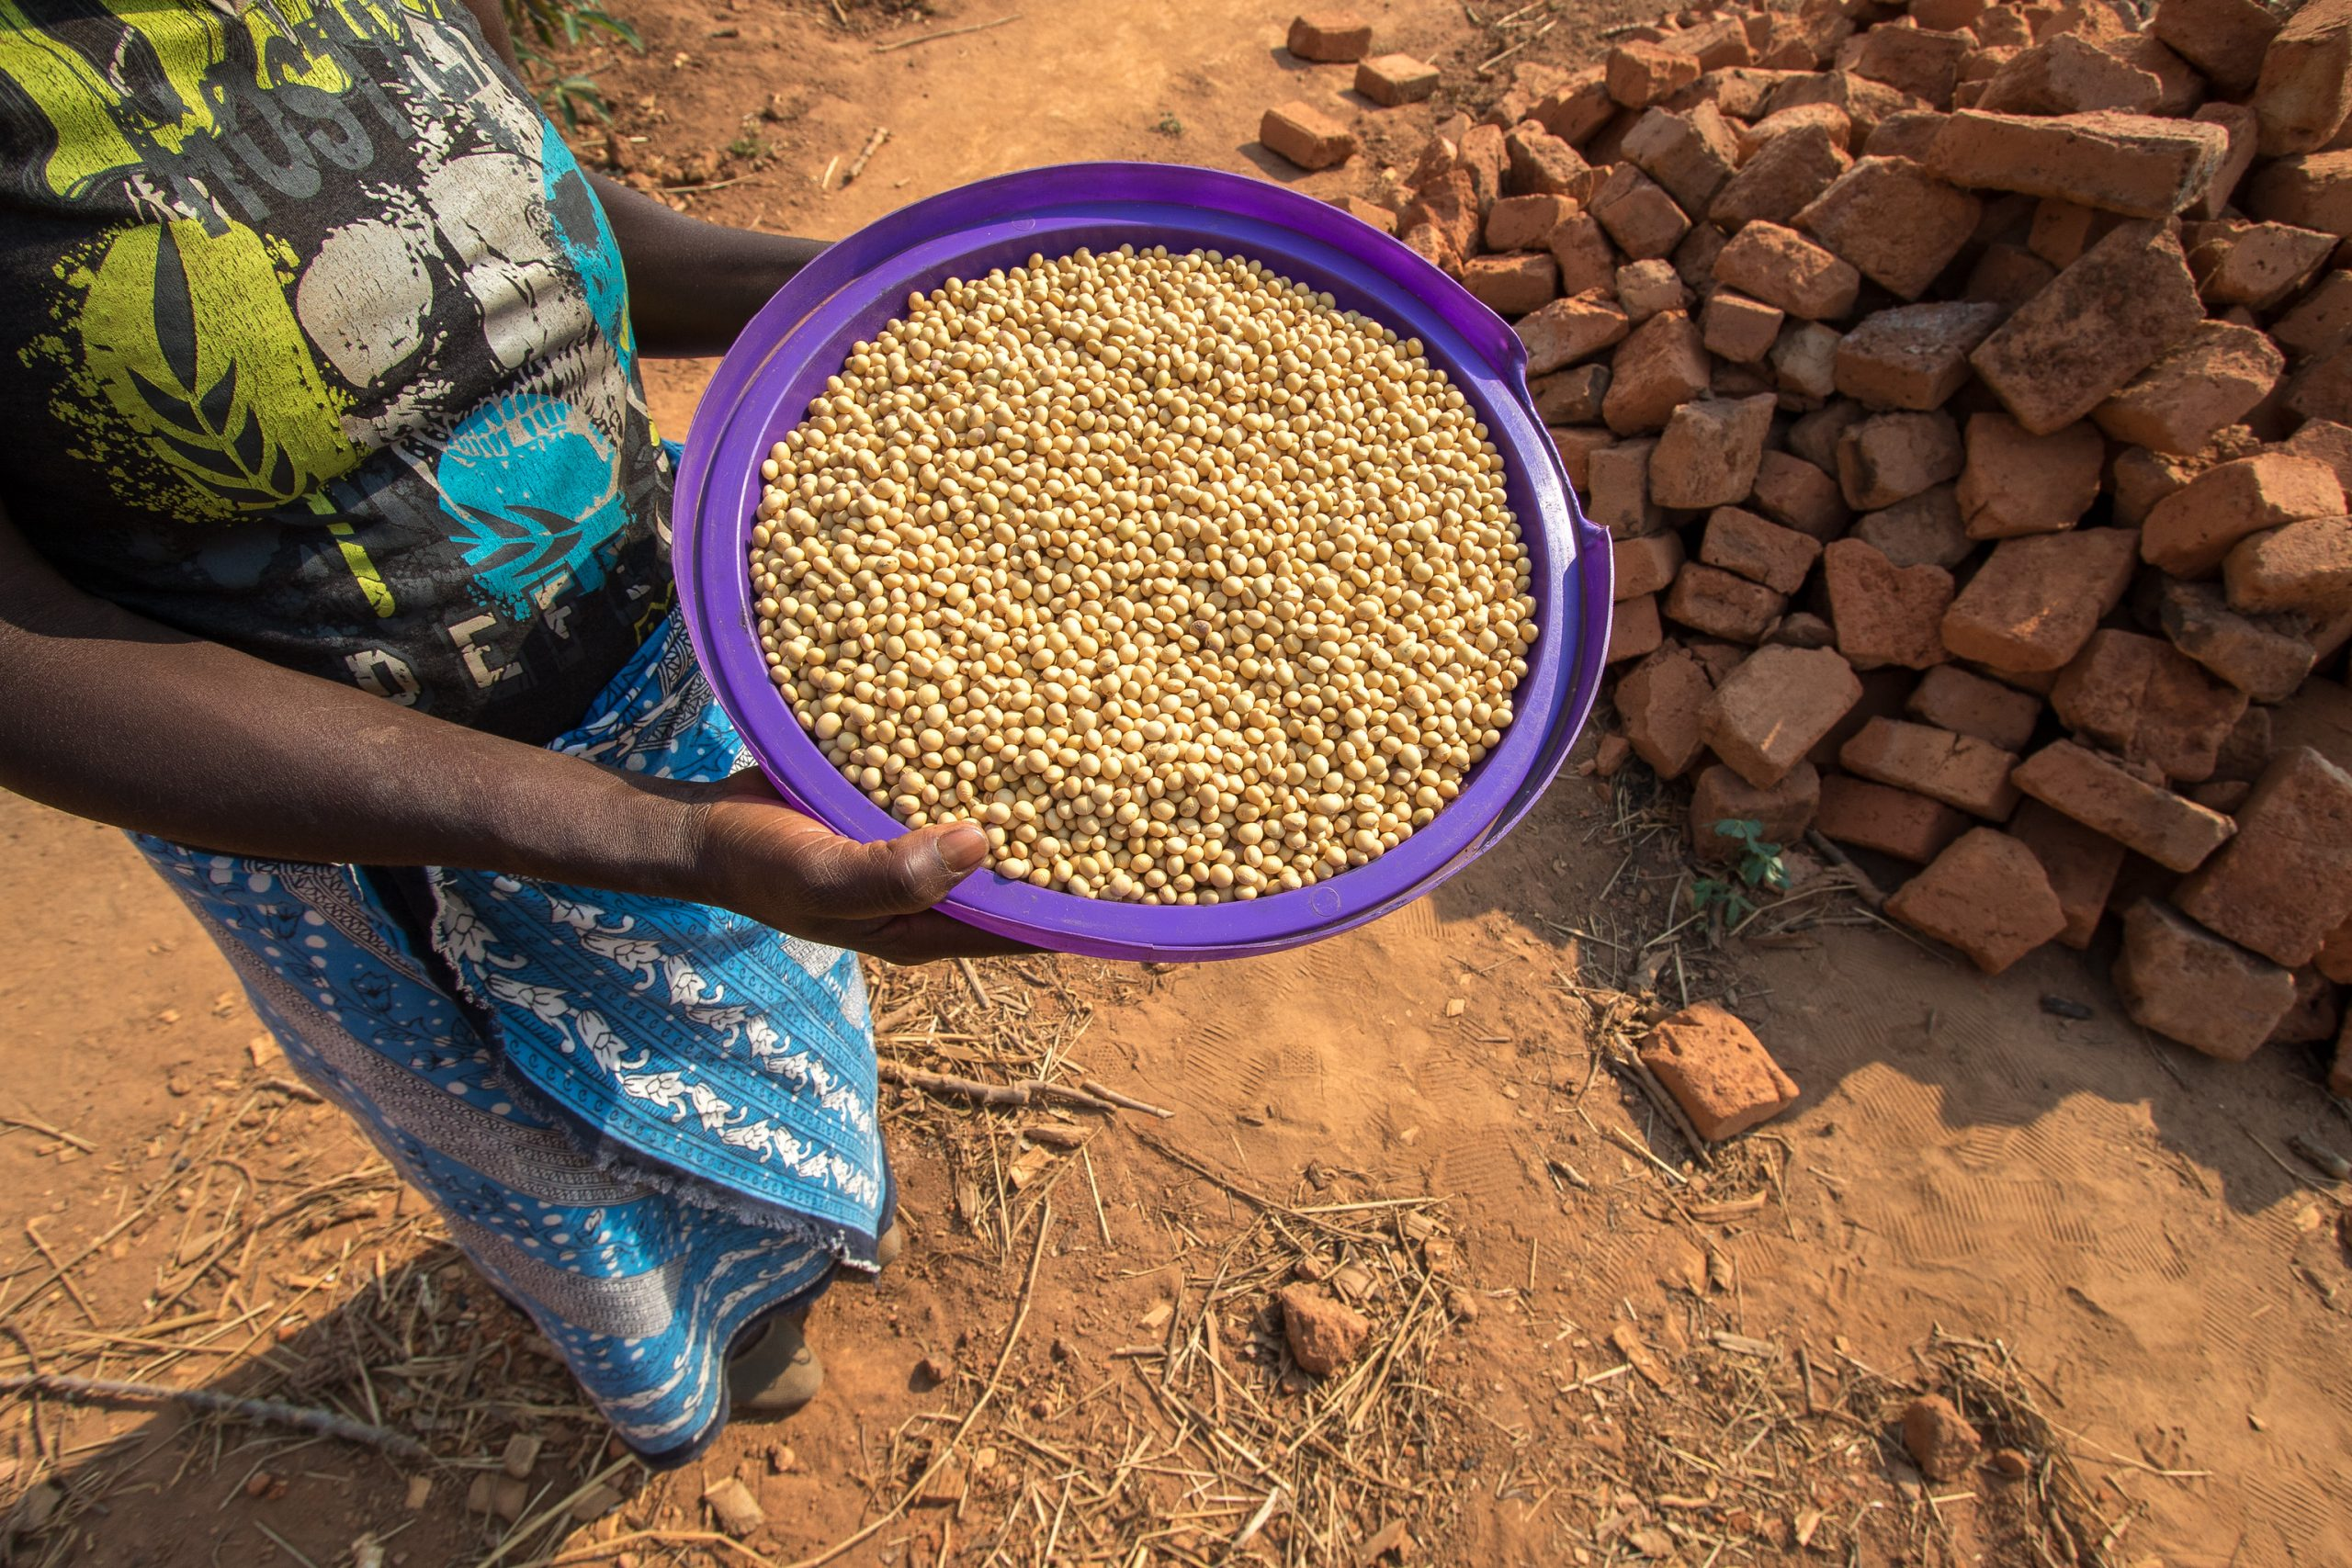 Women's agricultural groups in Malawi